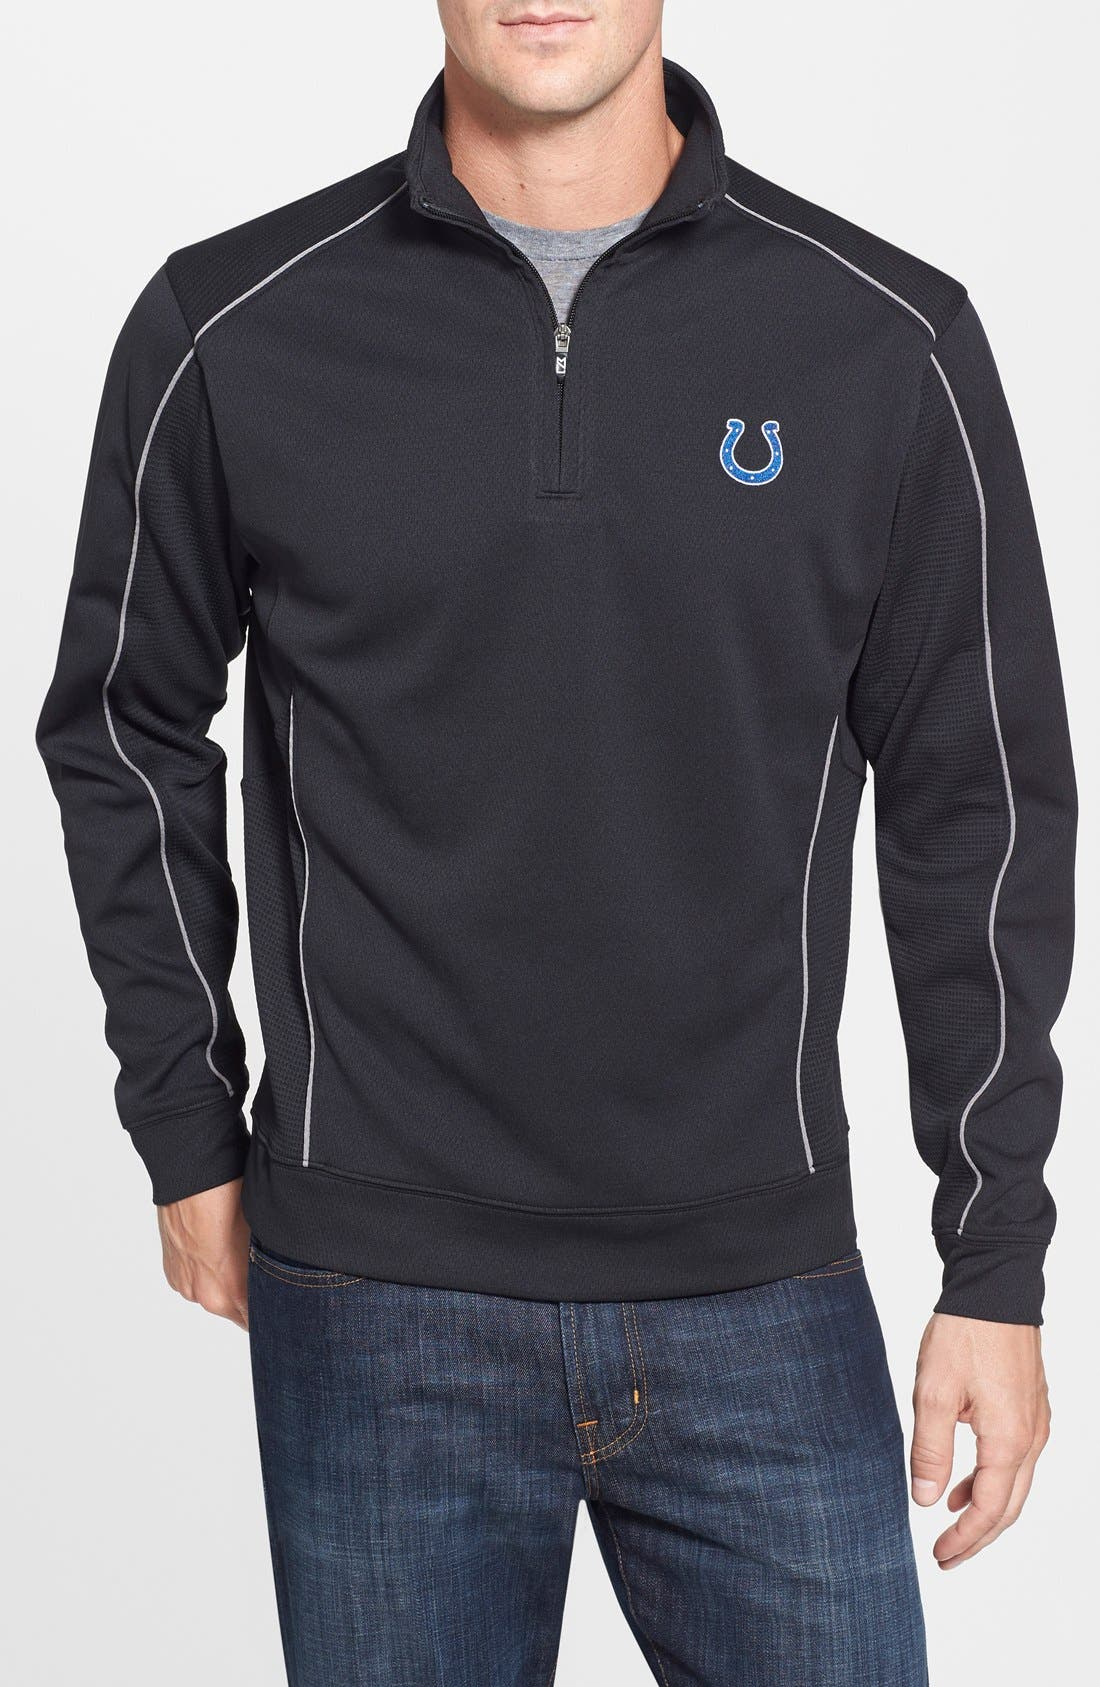 Indianapolis Colts - Edge DryTec Moisture Wicking Half Zip Pullover,                             Main thumbnail 1, color,                             001